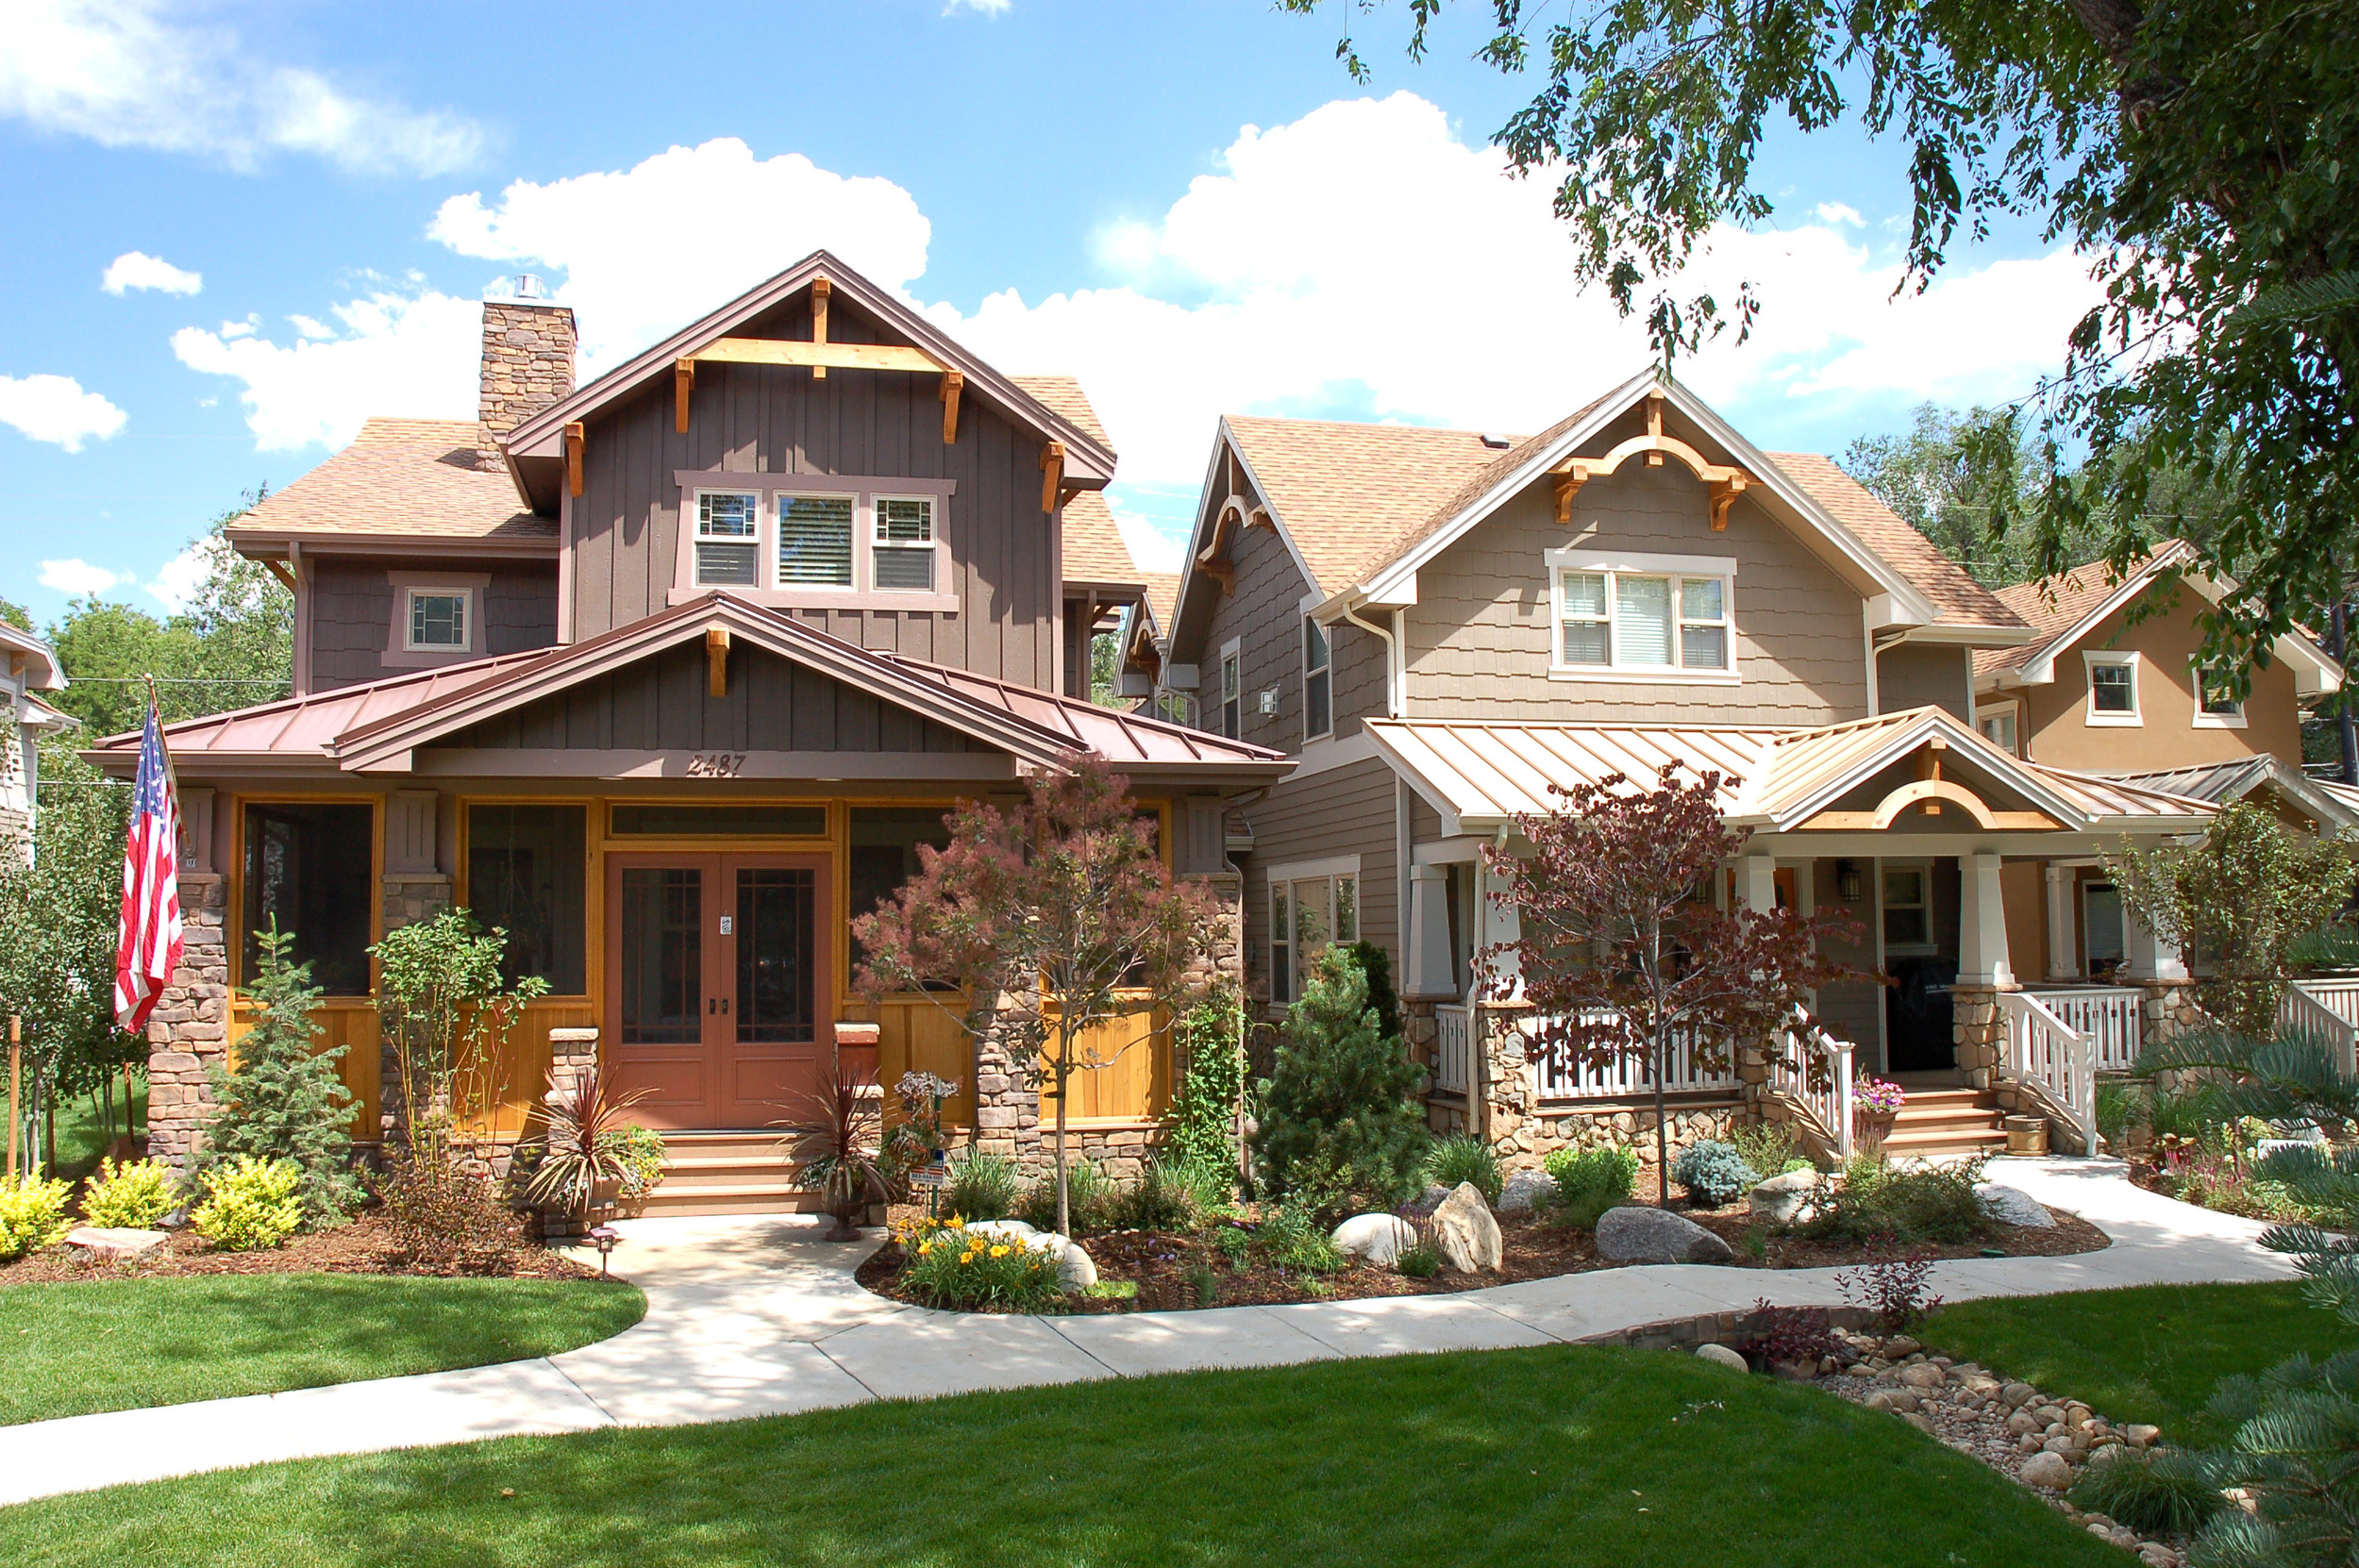 Mapleton Bungalows3.JPG